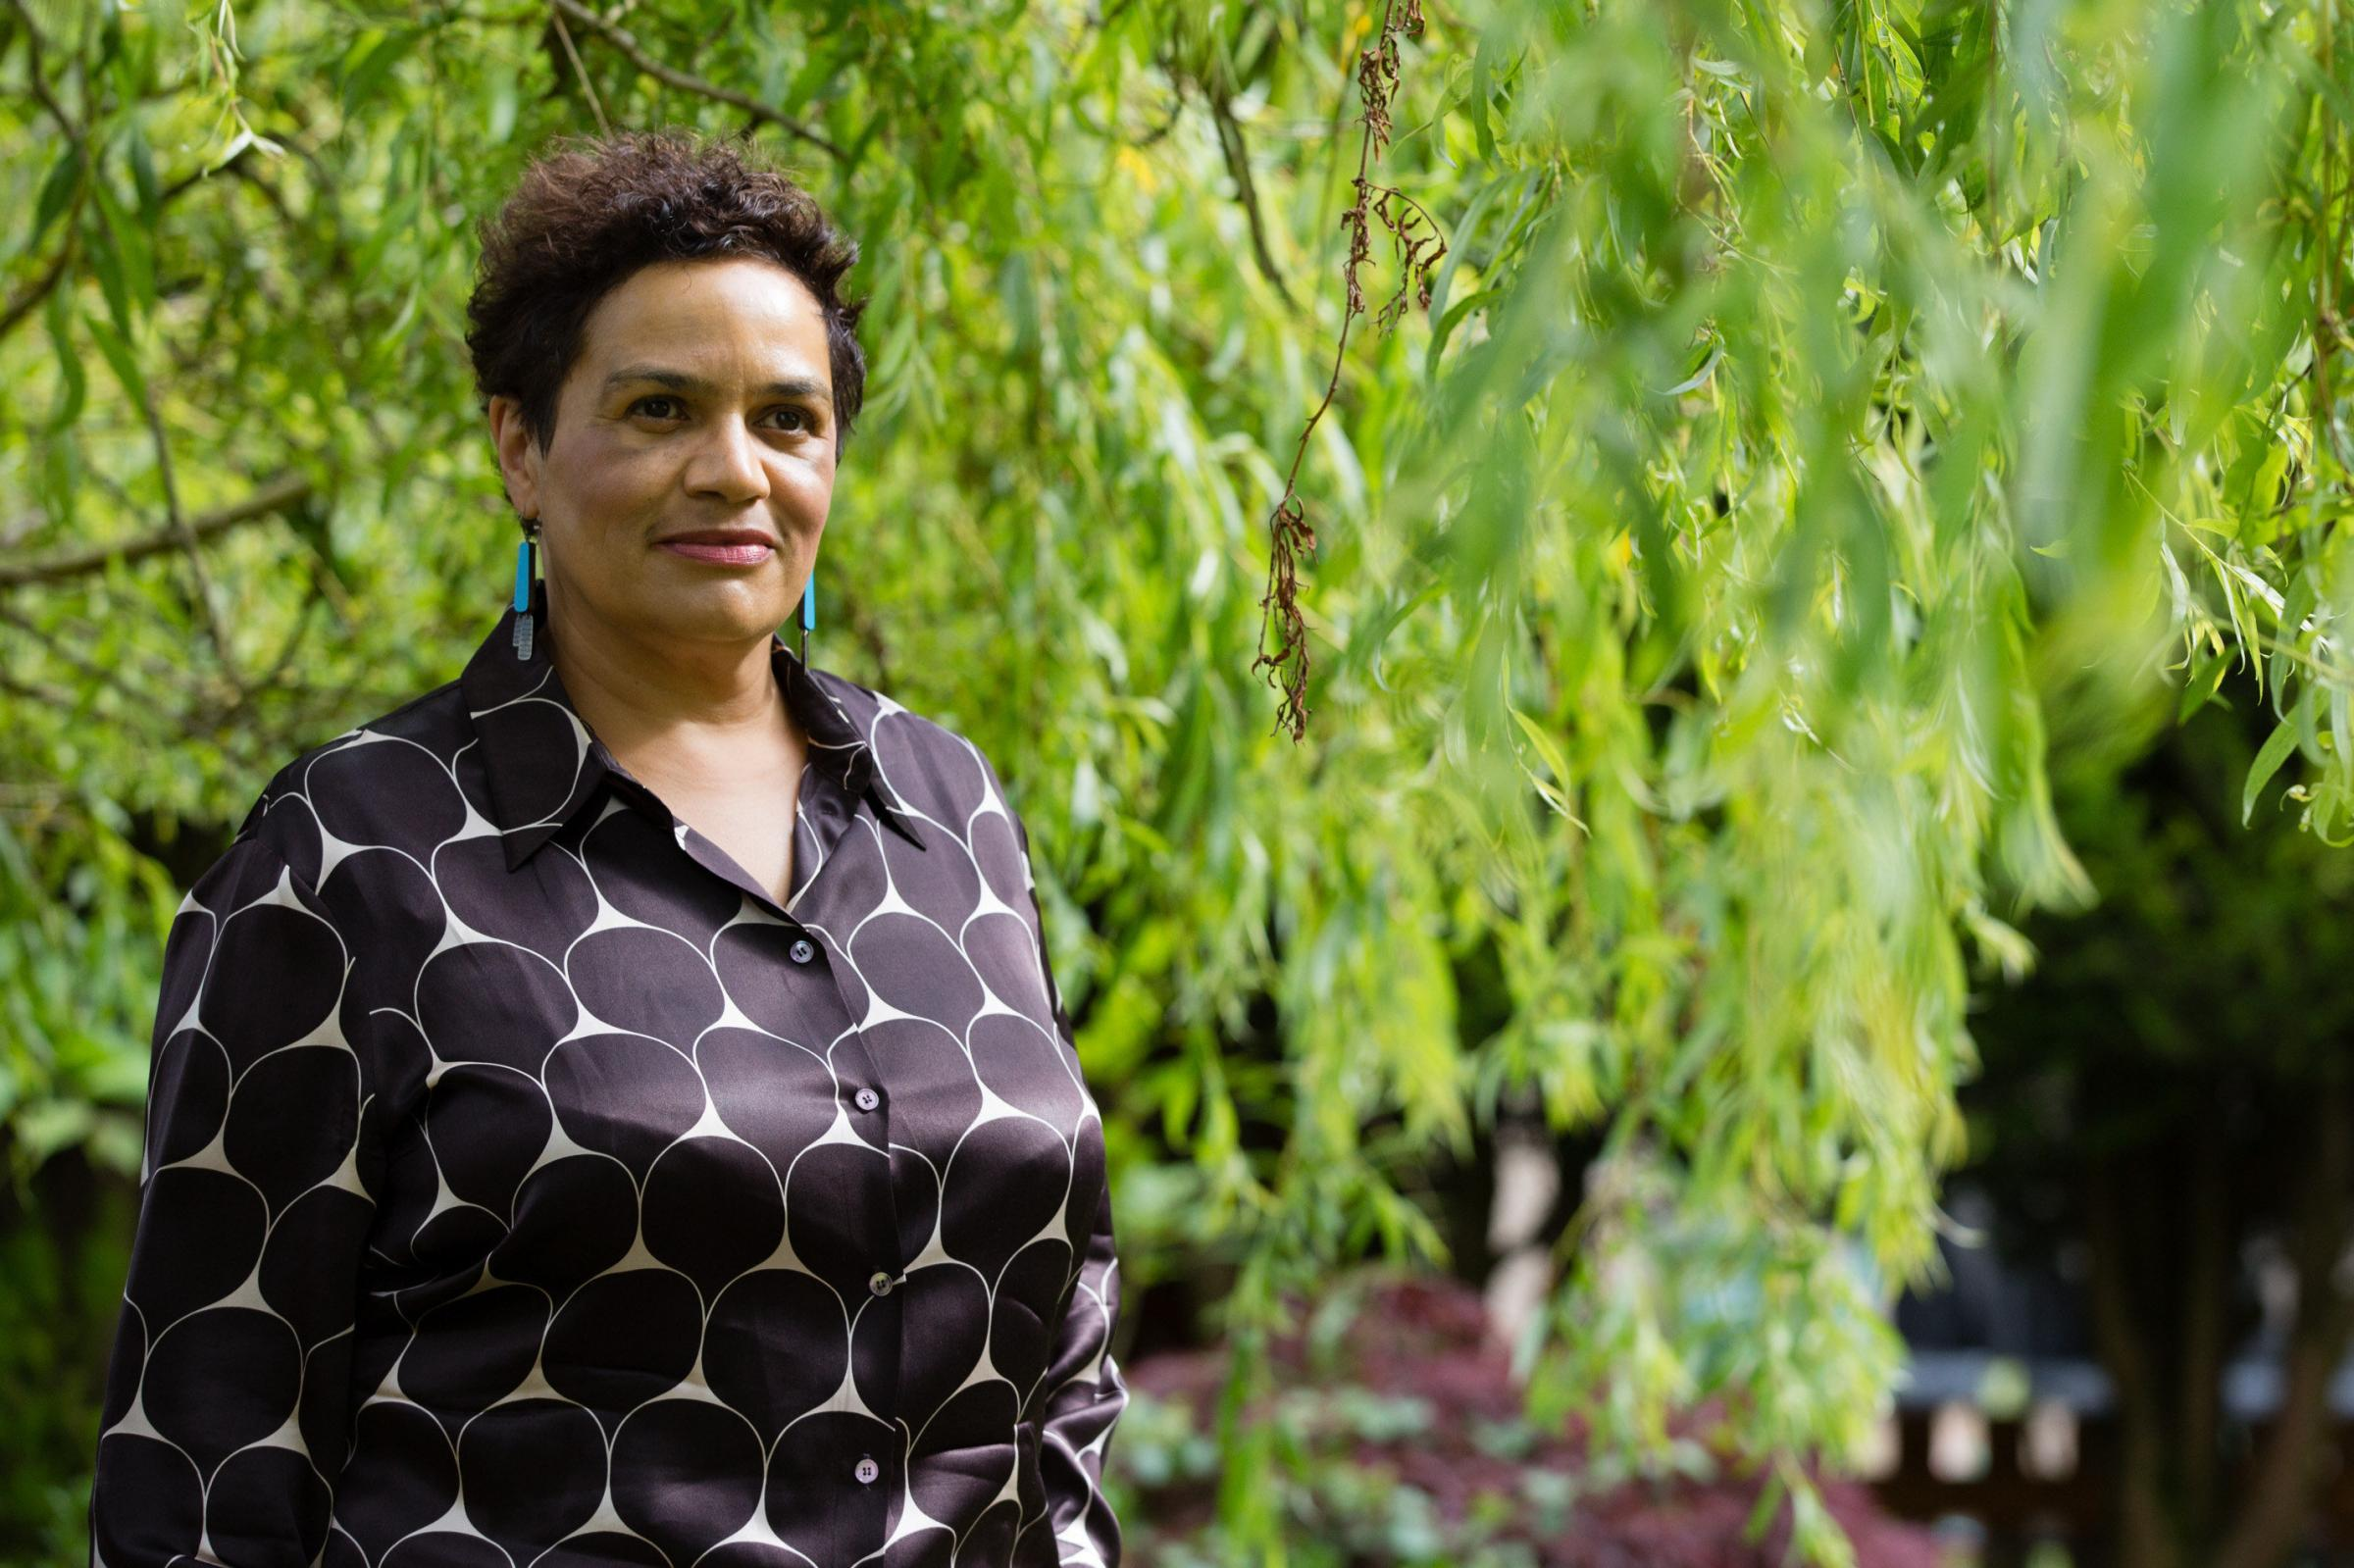 Poet Jackie Kay, whose childhood experience inspired her work, will appear at the conference